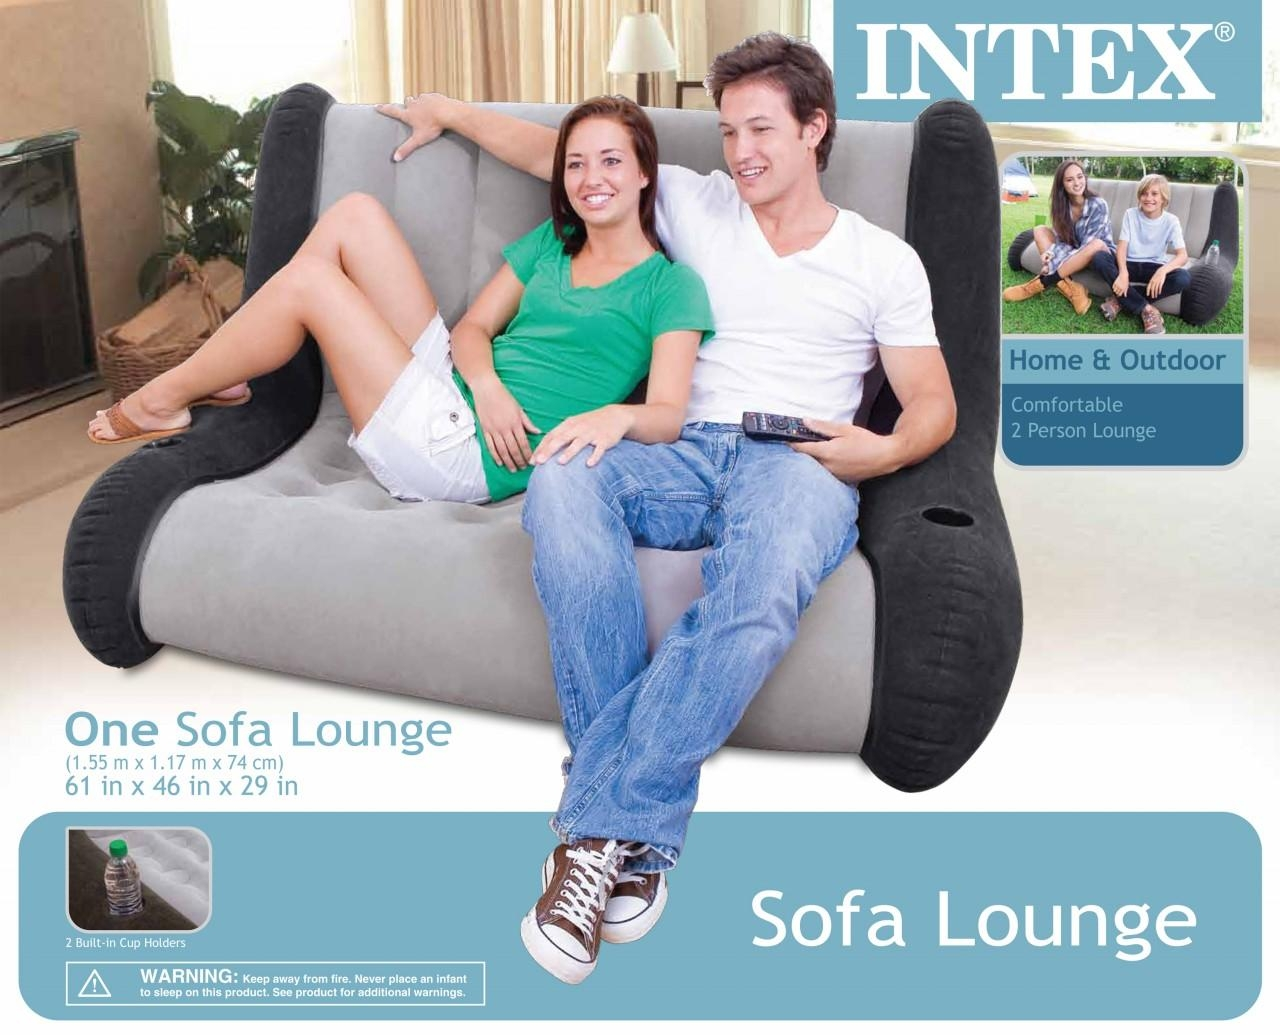 Intex Inflatable Sofa Lounge Intended For Intex Inflatable Sofas (View 14 of 20)